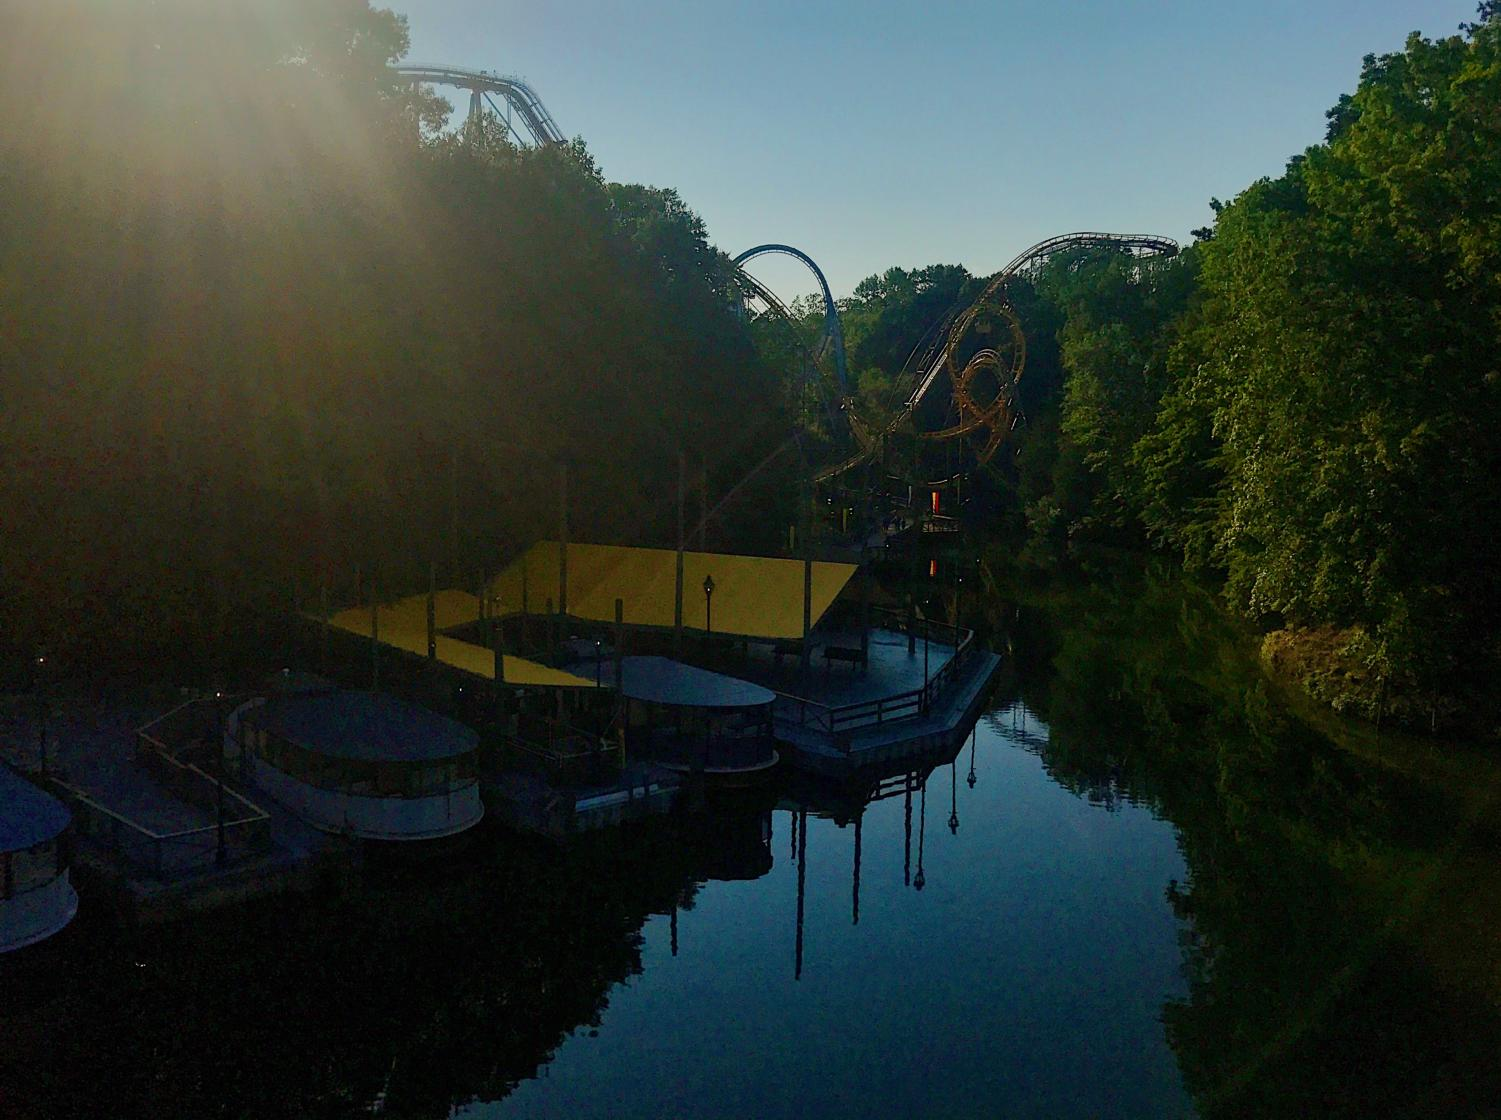 Four of the seven roller coasters can be found bordering the Rhine River featuring Lochness Montster's famous interconnecting loops directly over it.